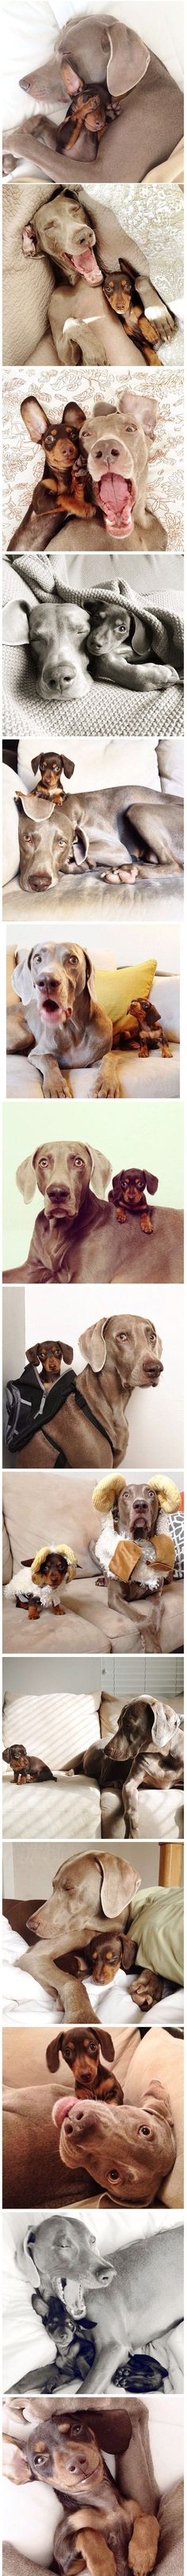 The doxie looks just like Ollie. I wish Millie liked Ollie this much. :)